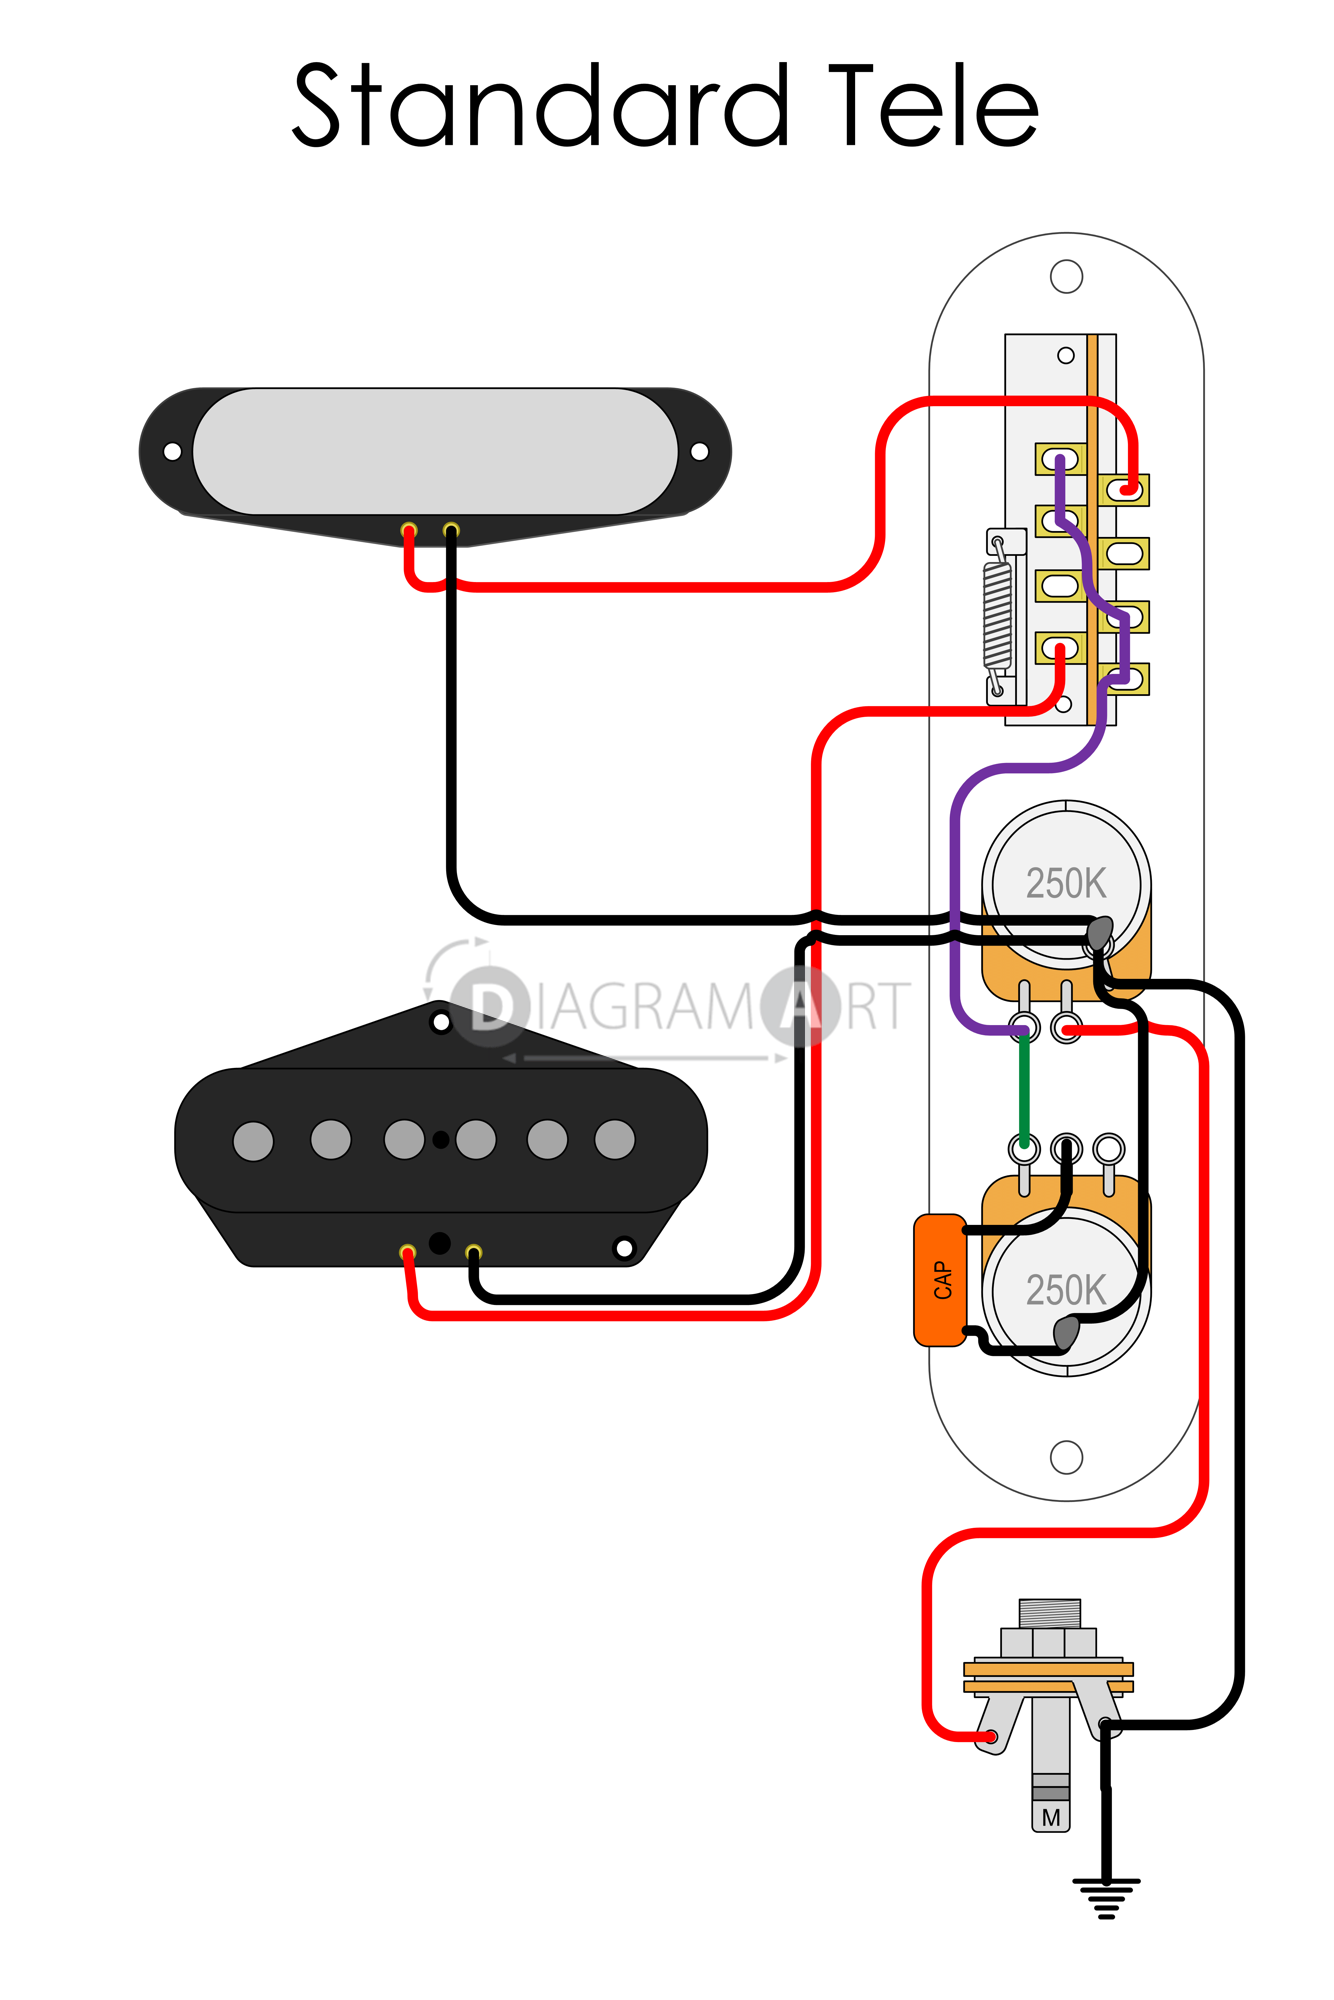 Standard Telecaster Wiring Diagram Get Free Image About Also Tele Humbucker Electric Guitar Circuit Diagramart